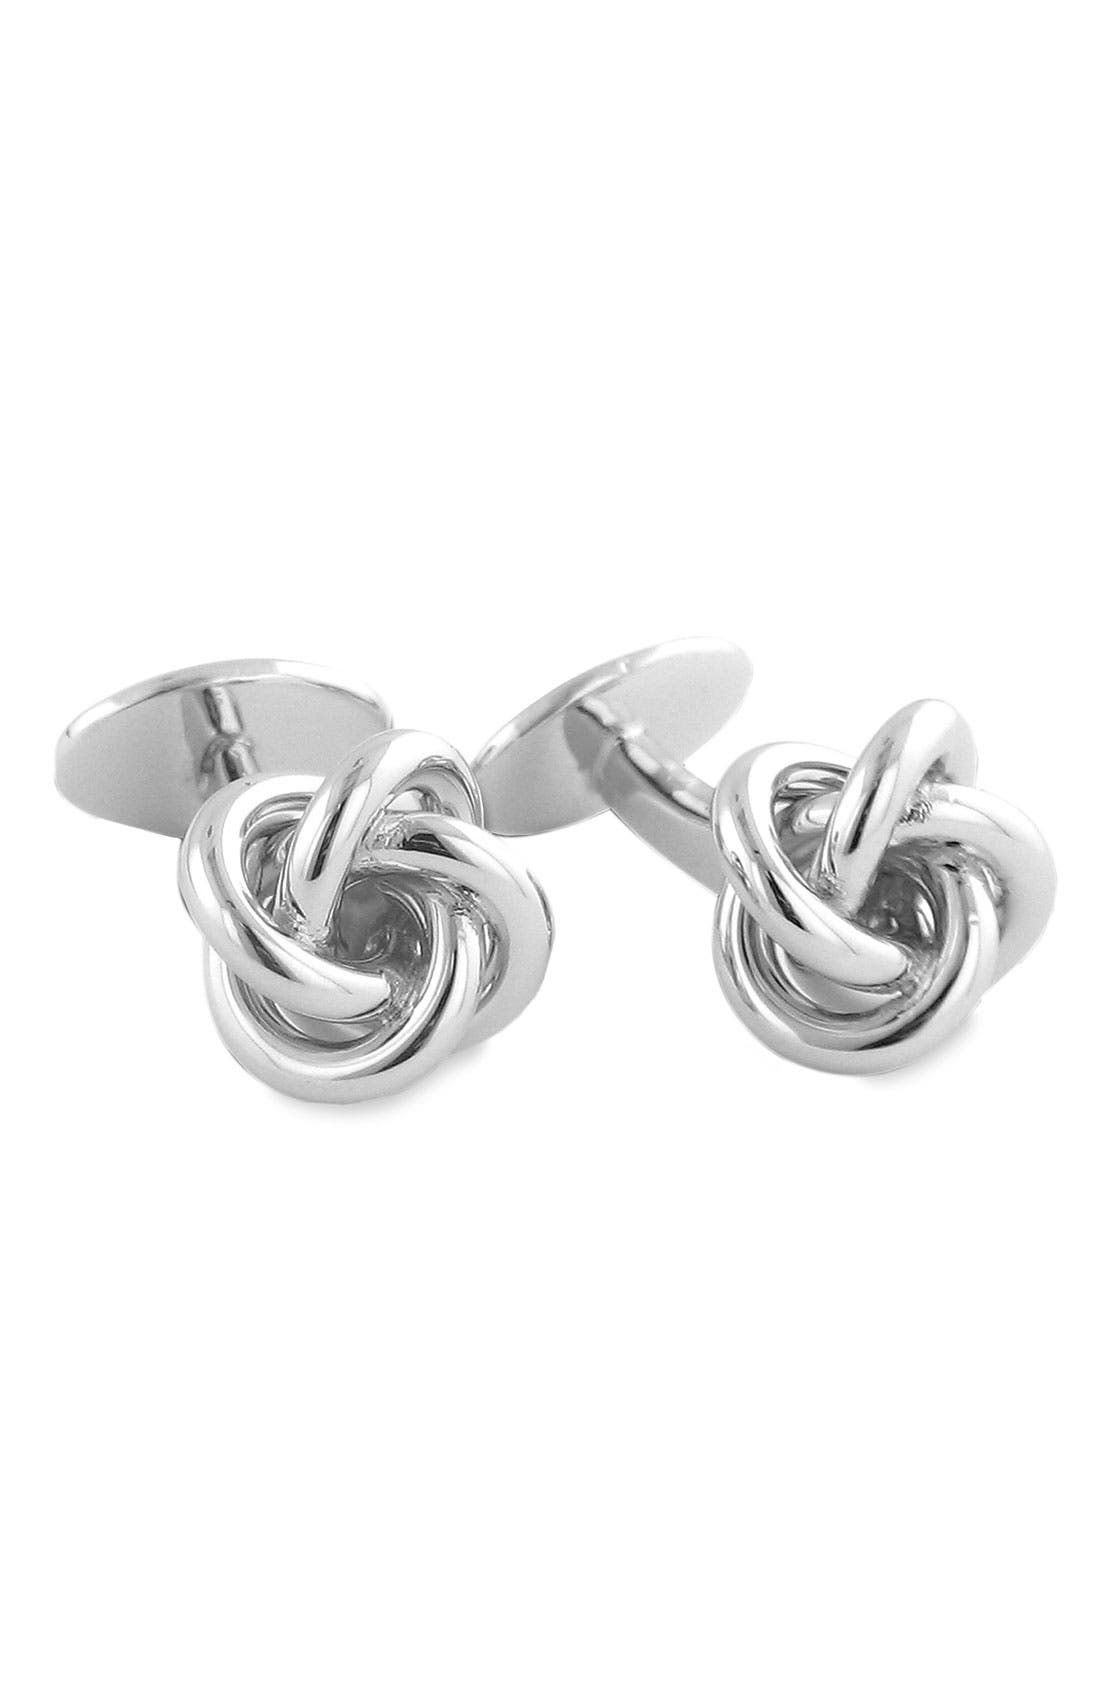 Knot Cuff Links,                             Main thumbnail 1, color,                             STERLING SILVER